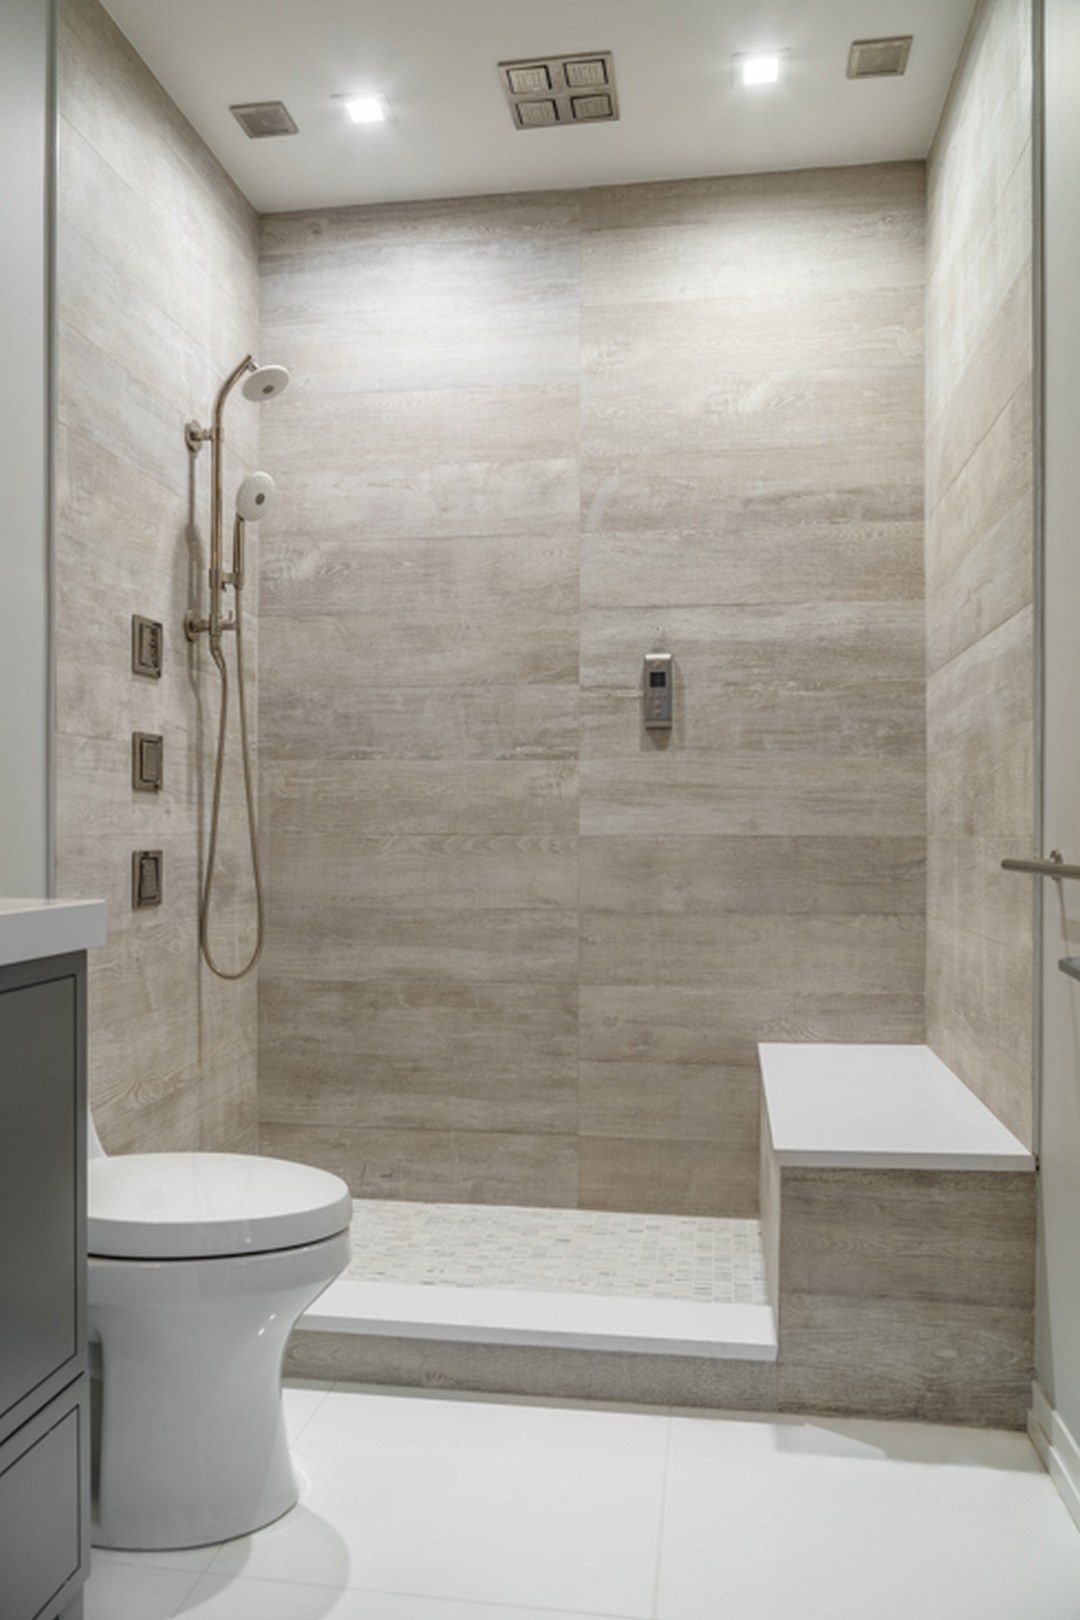 Why You Should Remodel Your Bathroom With Images Bathroom Remodel Shower Best Bathroom Tiles Small Bathroom